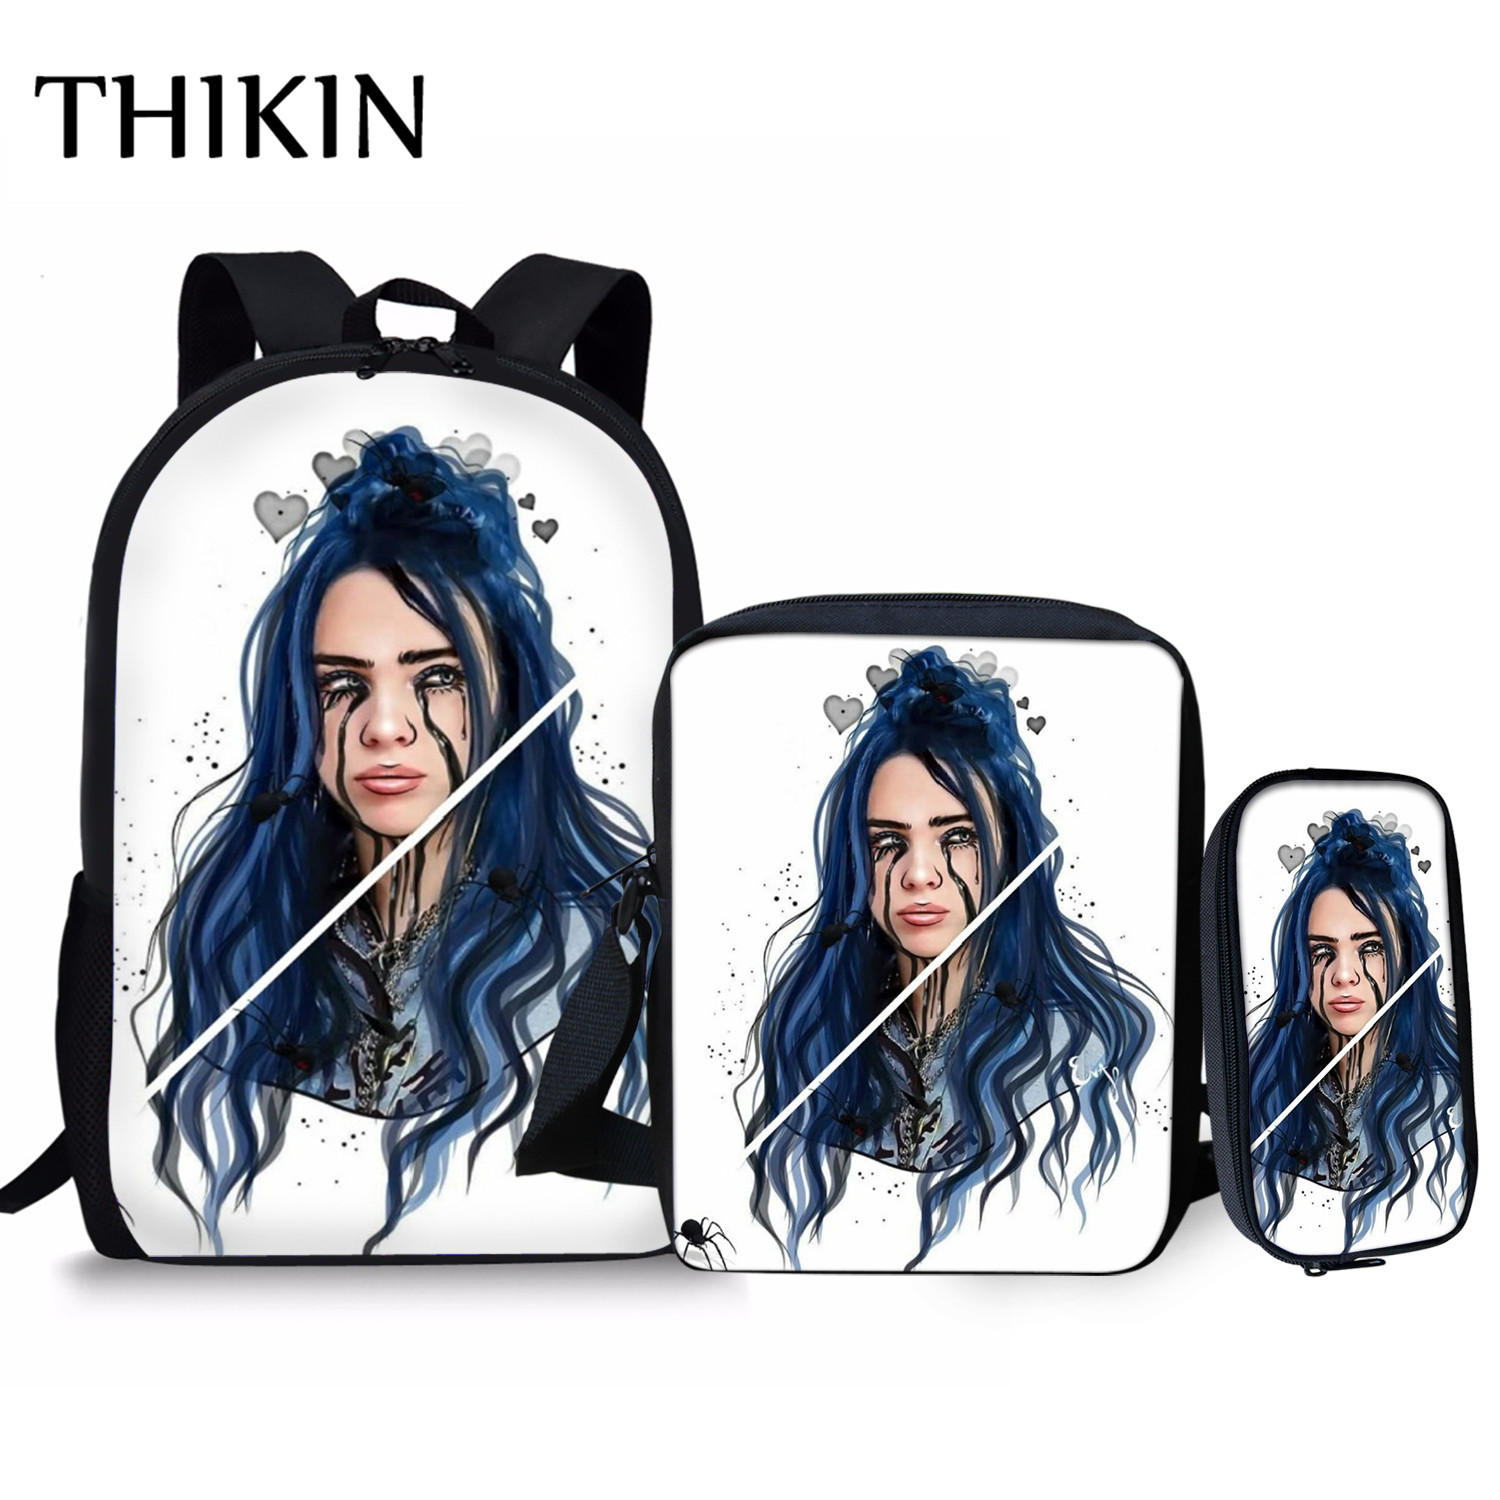 THIKIN Rapper Billie Eilish Women Backpack Teenager Girls Hip Hop School Bag Women Bad Guy Travel Capacity Bag Student Mochila